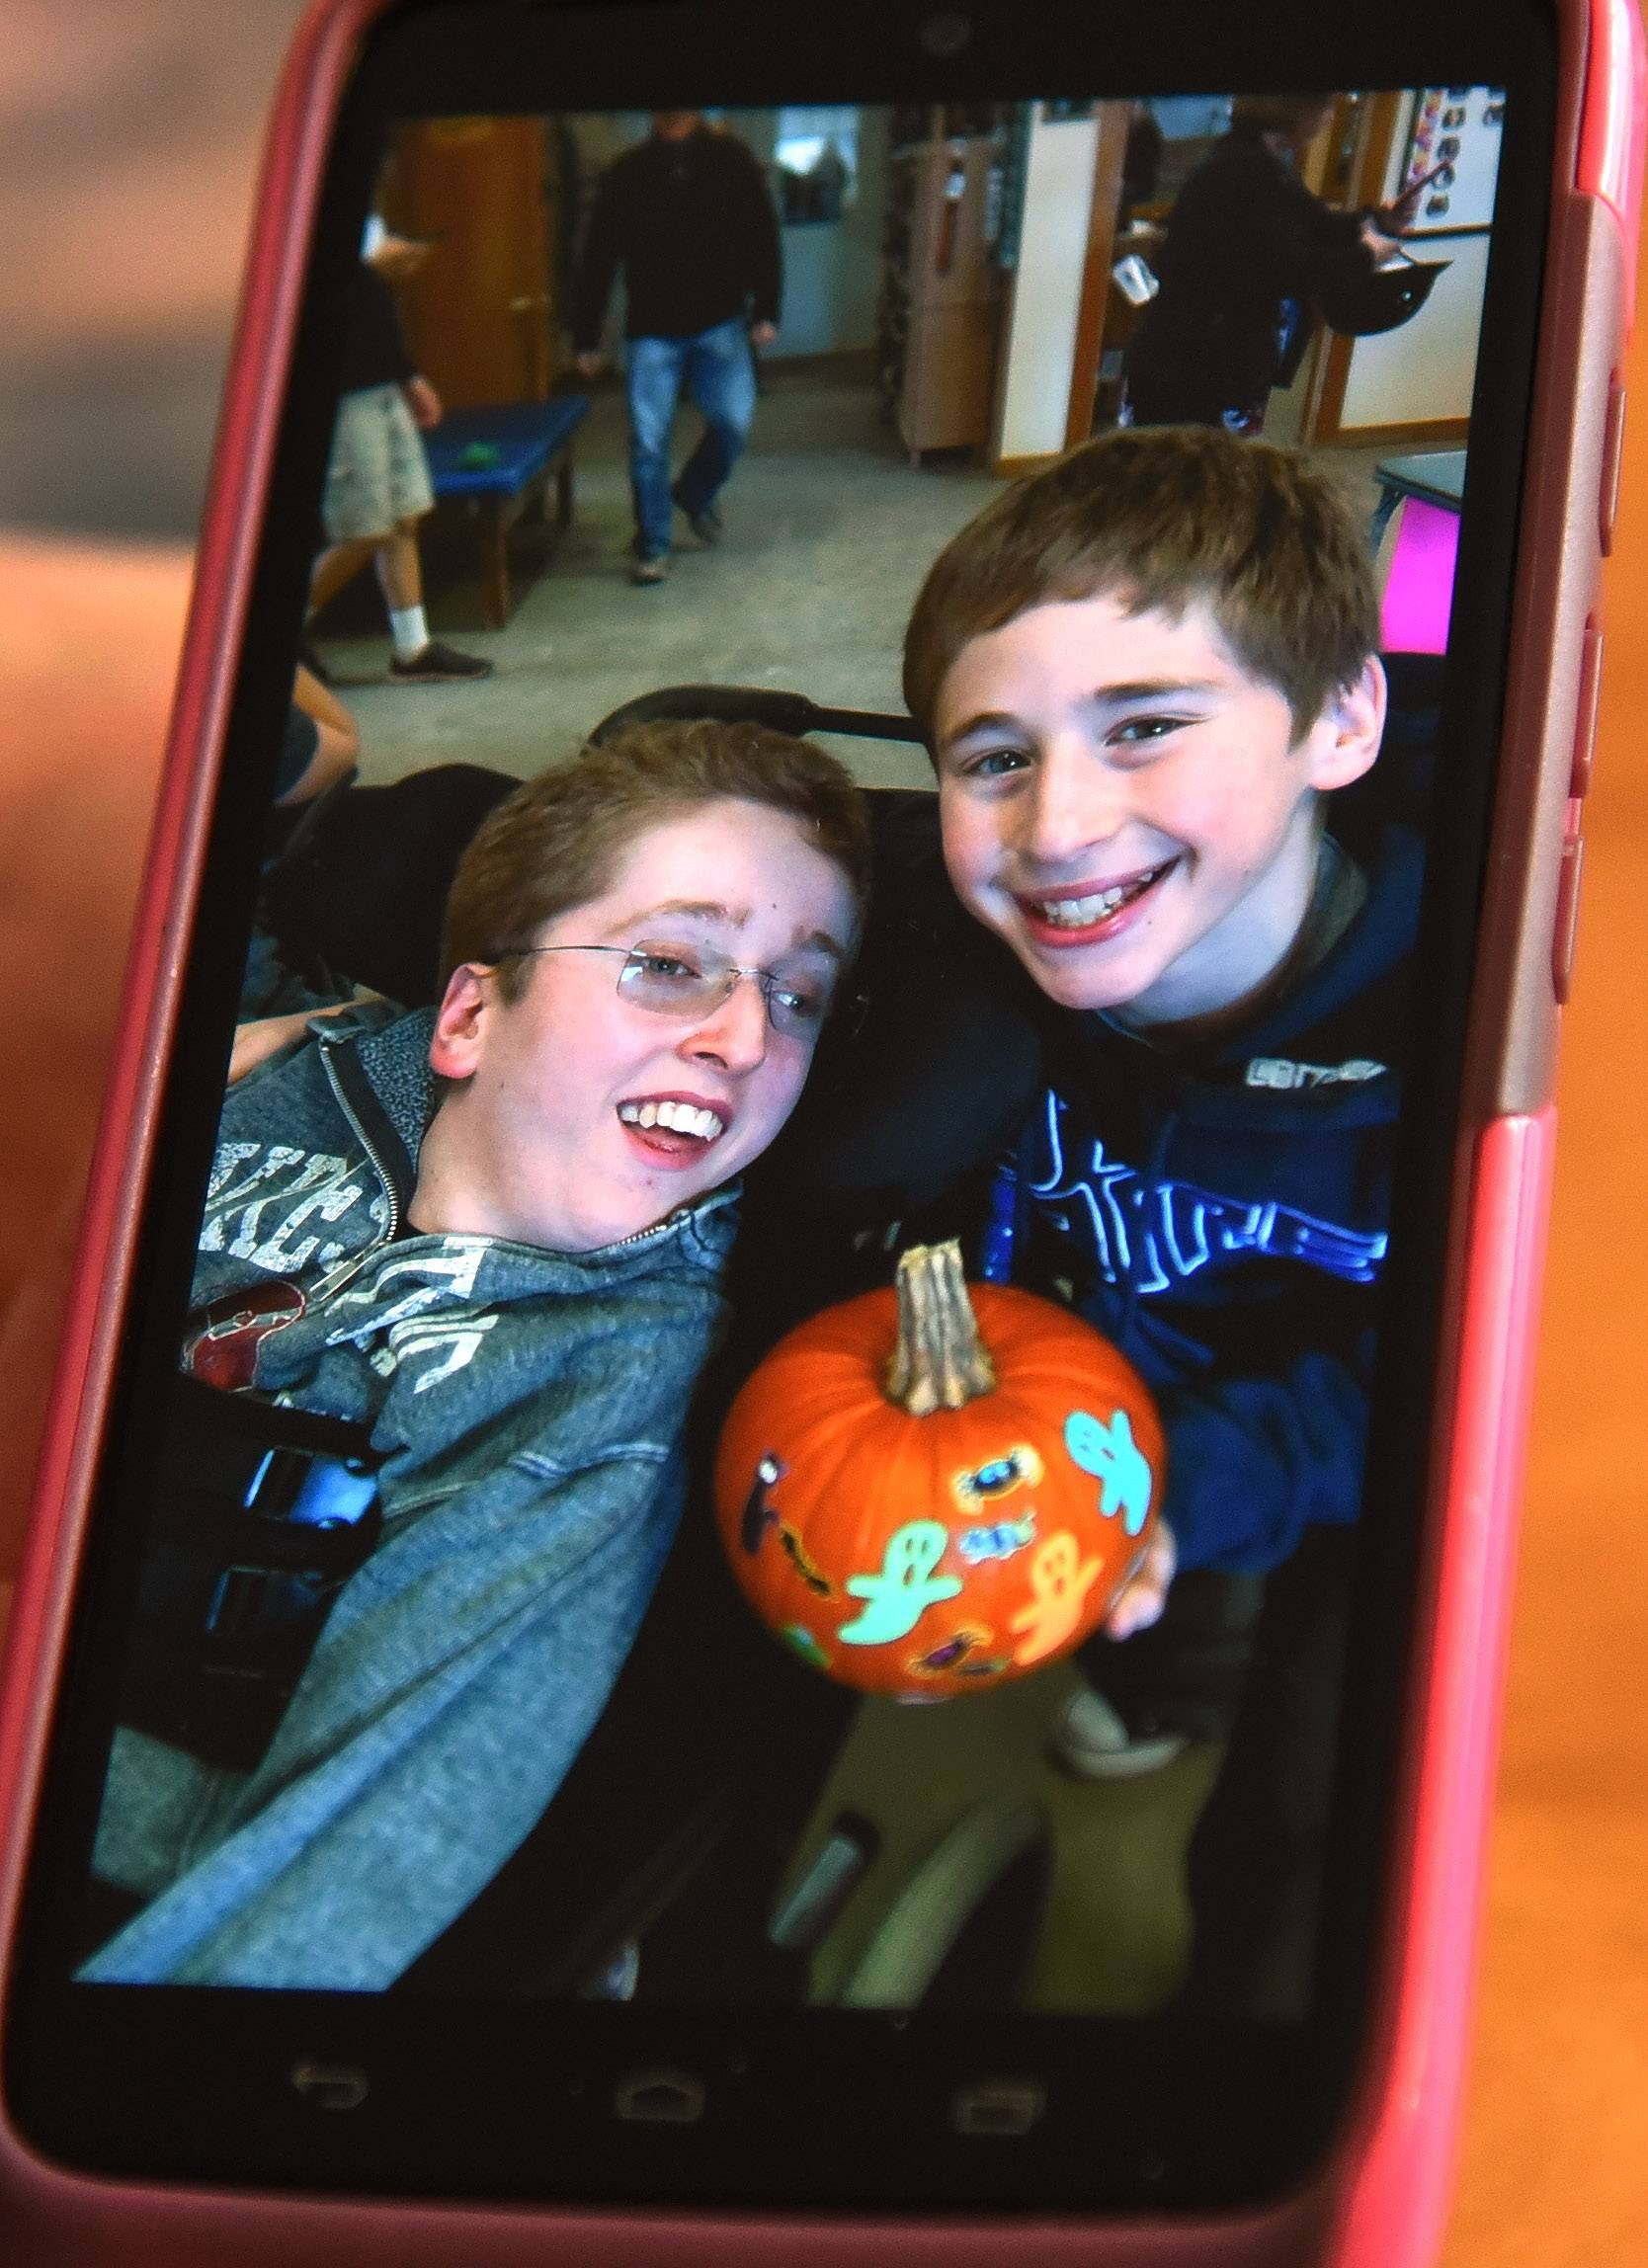 Max Randell, who has Canavan disease, with his younger brother Alex, 14, prepare for Halloween in mid-October.